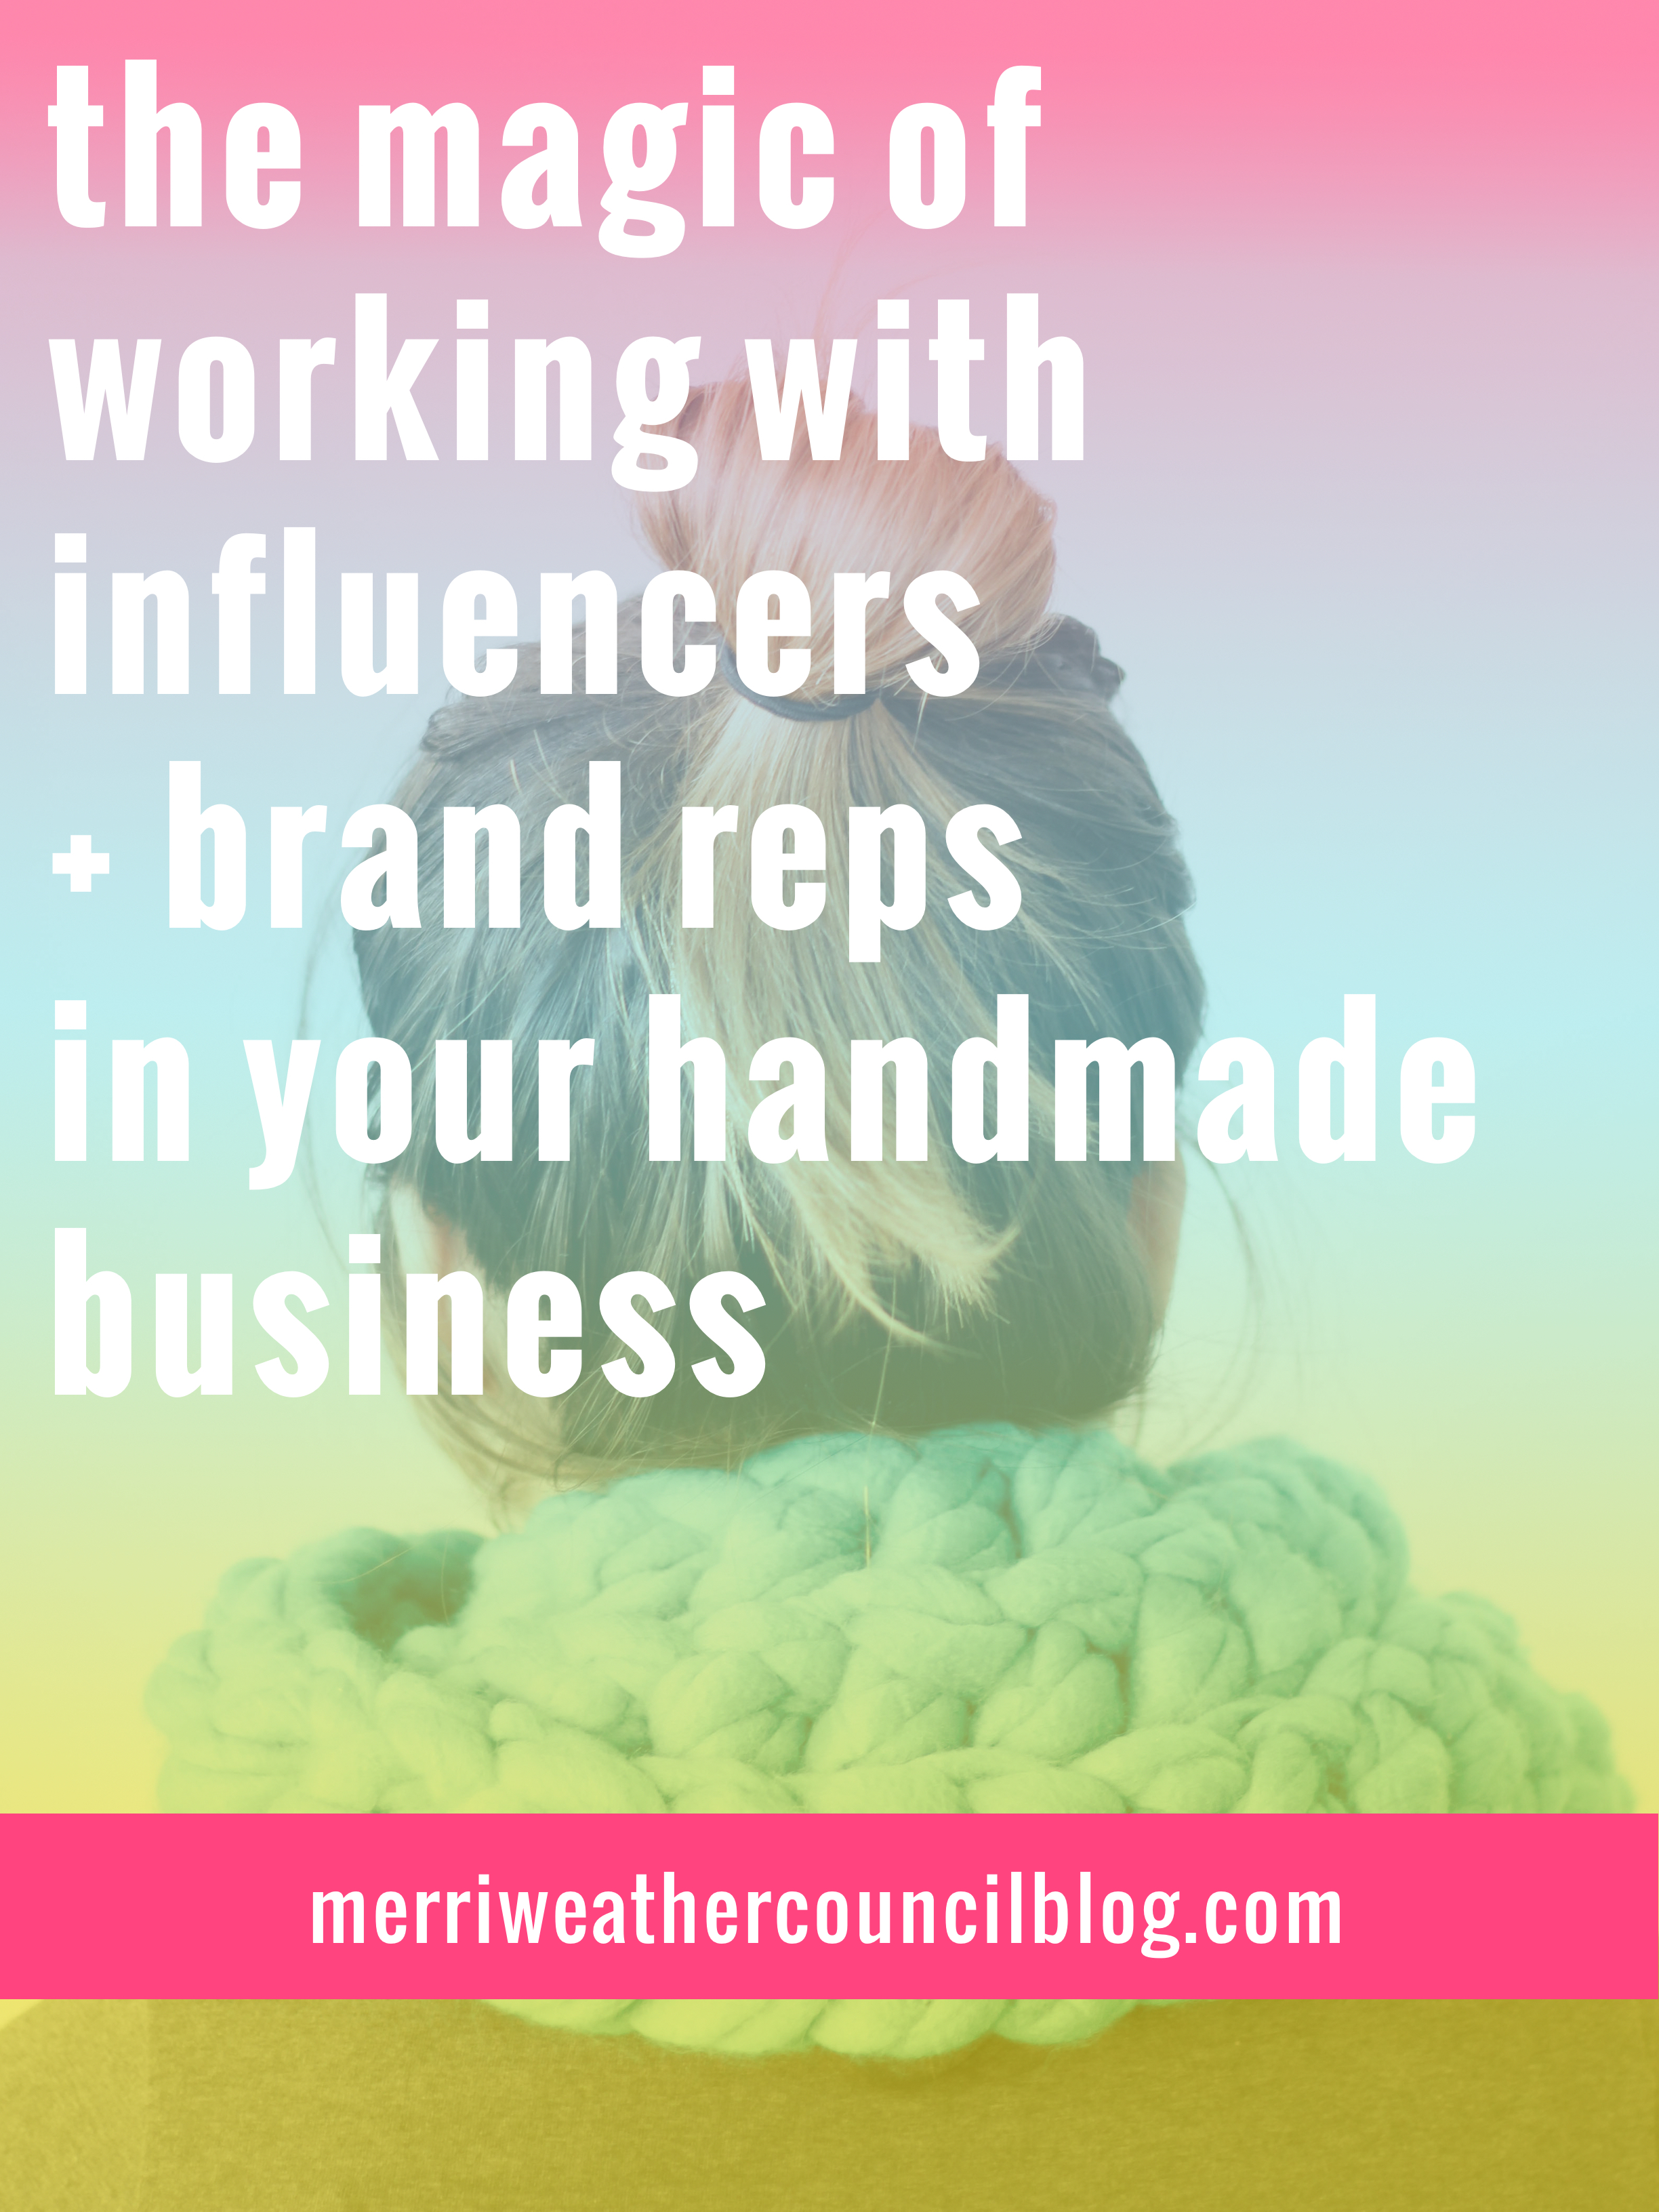 the magic of working with influencers + brand reps in handmade business | the merriweather council podcast